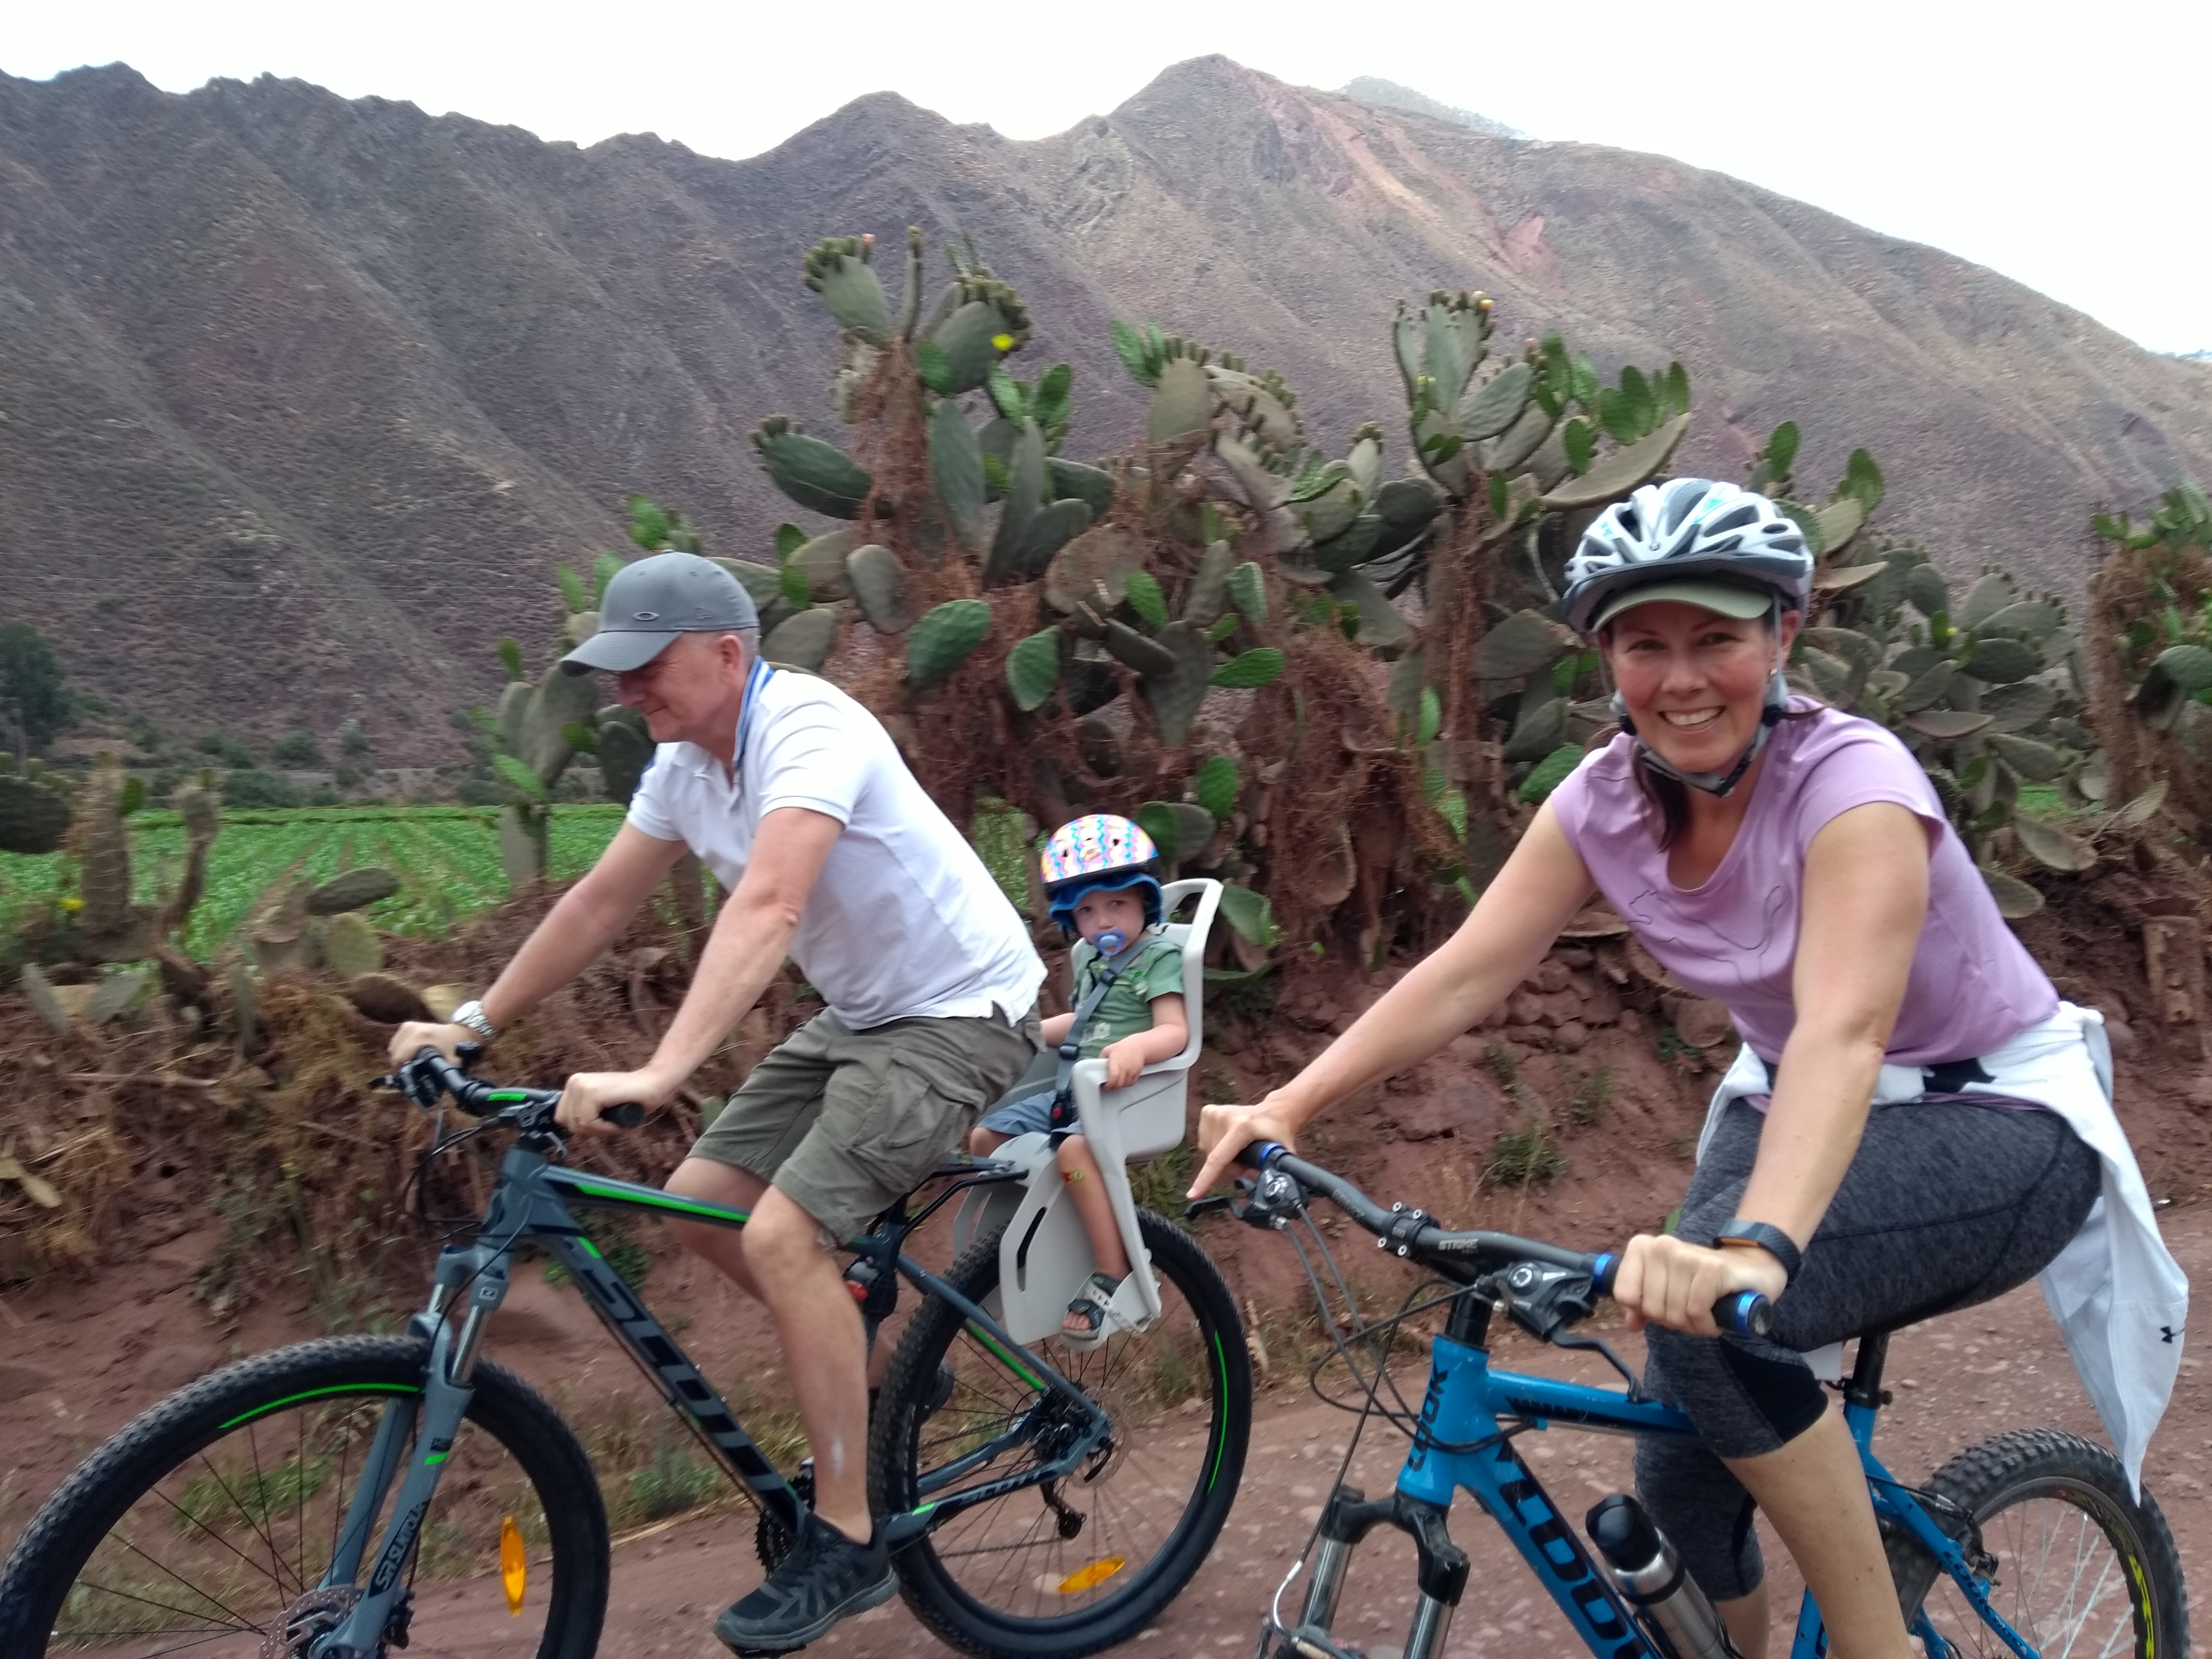 SACRED VALLEY BICYCLE TOUR